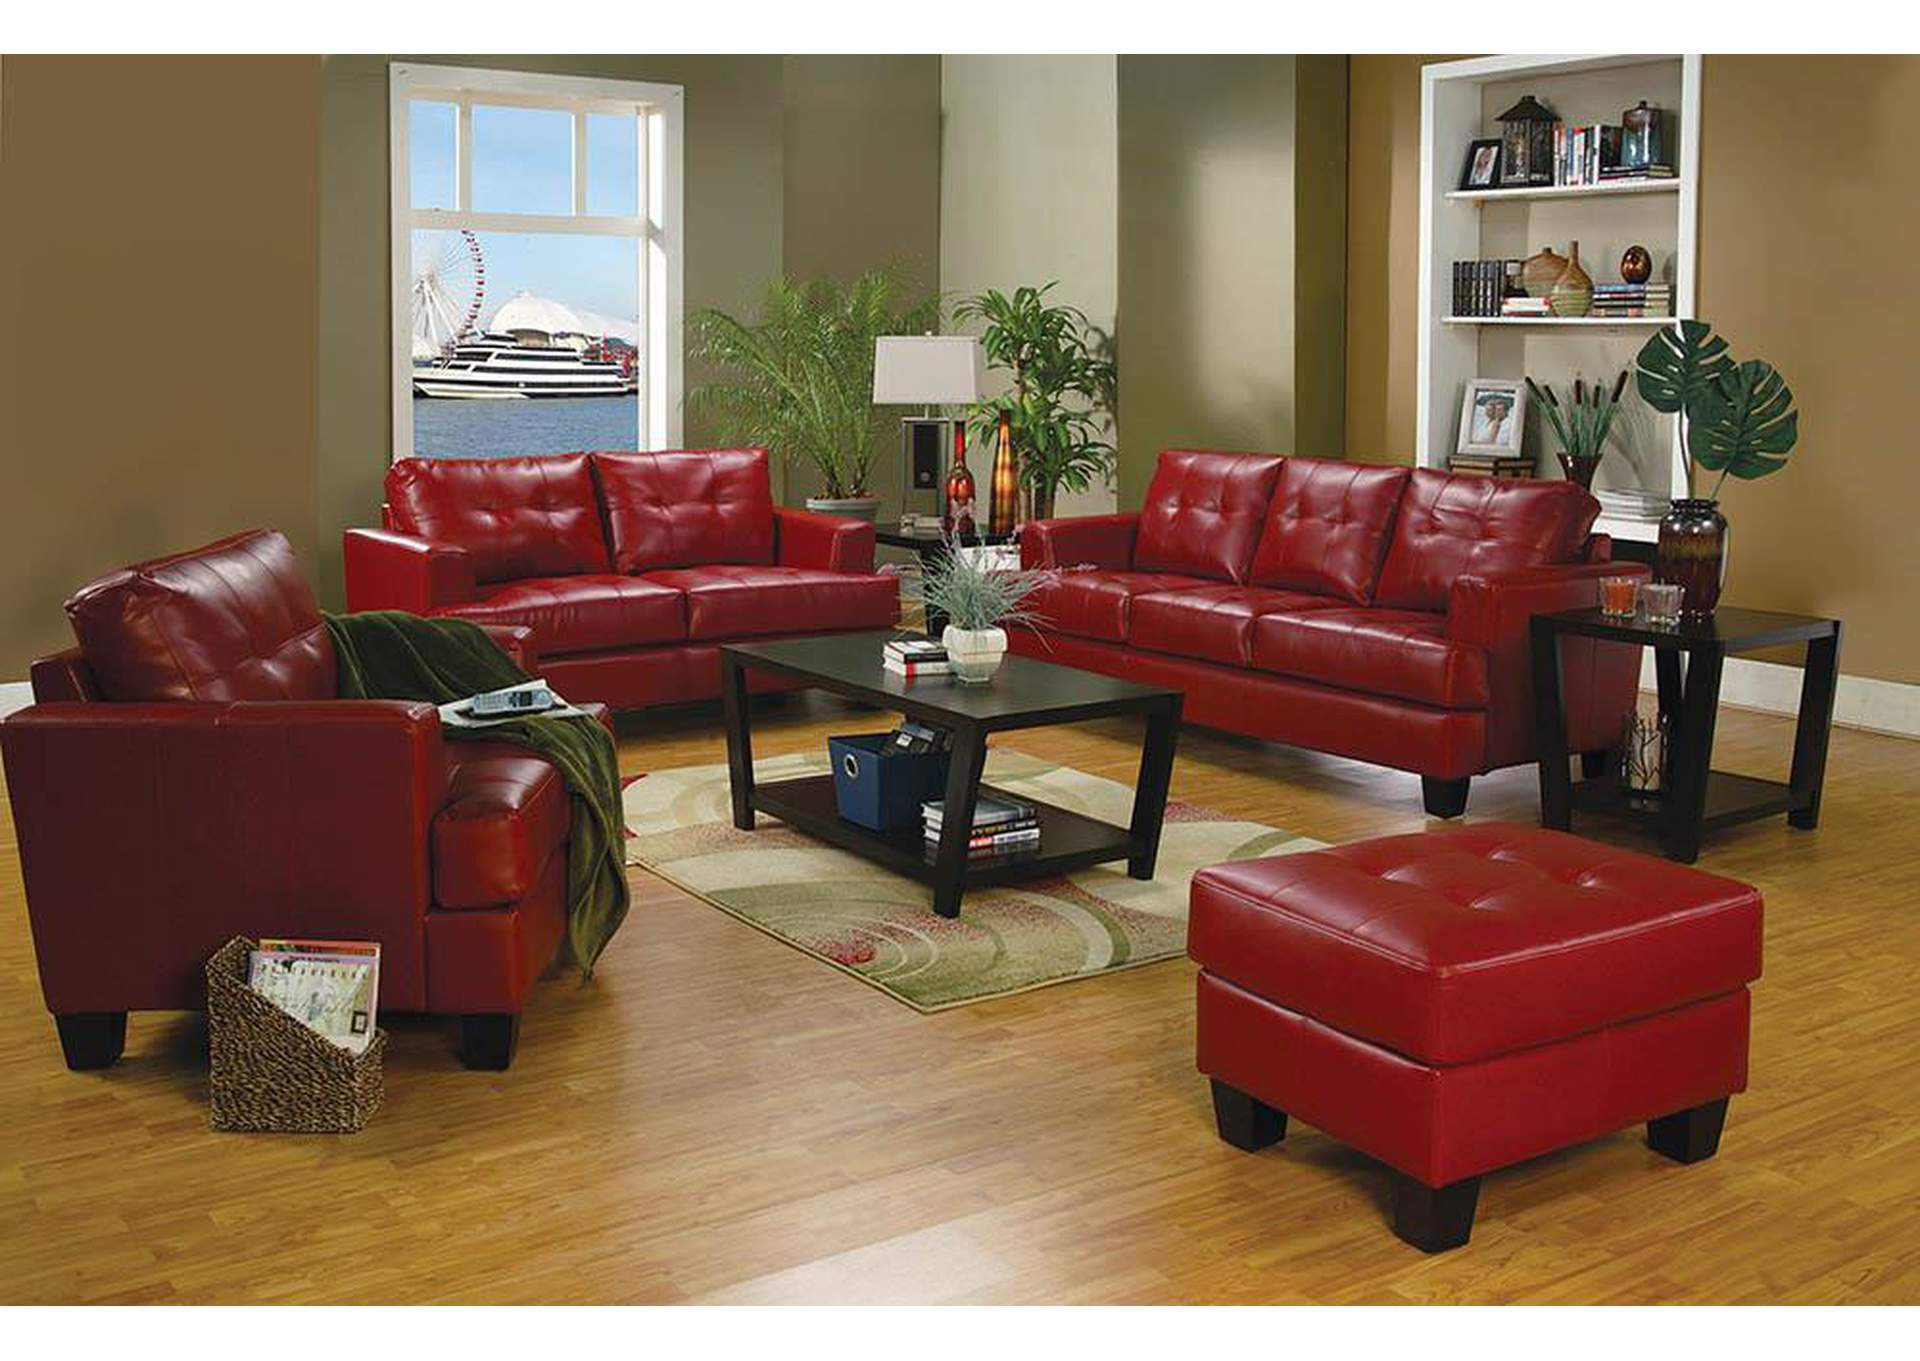 Samuel Red Bonded Leather Chair,ABF Coaster Furniture